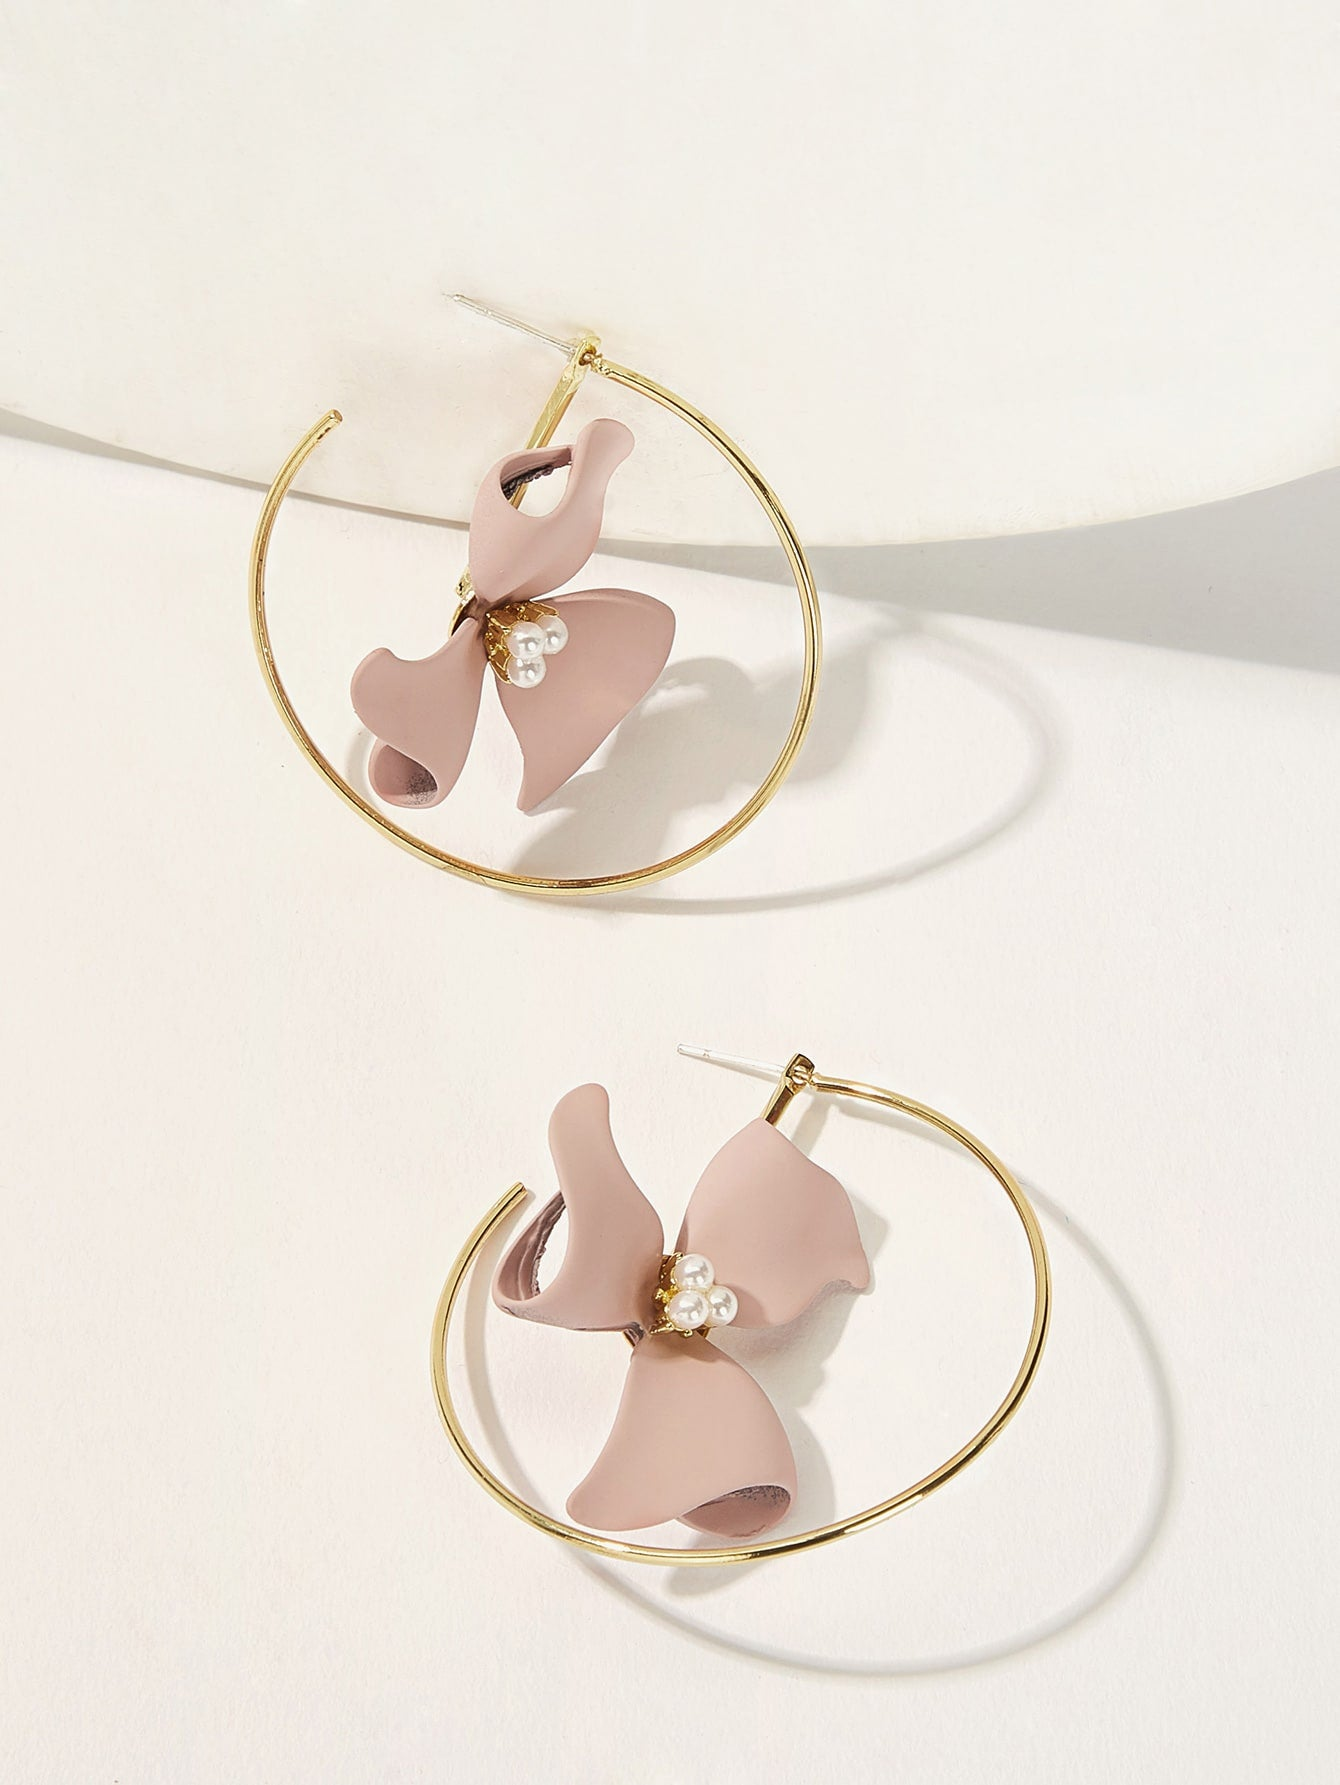 Pink Flower Cut Hoop With Faux Pearl Earrings 1pair